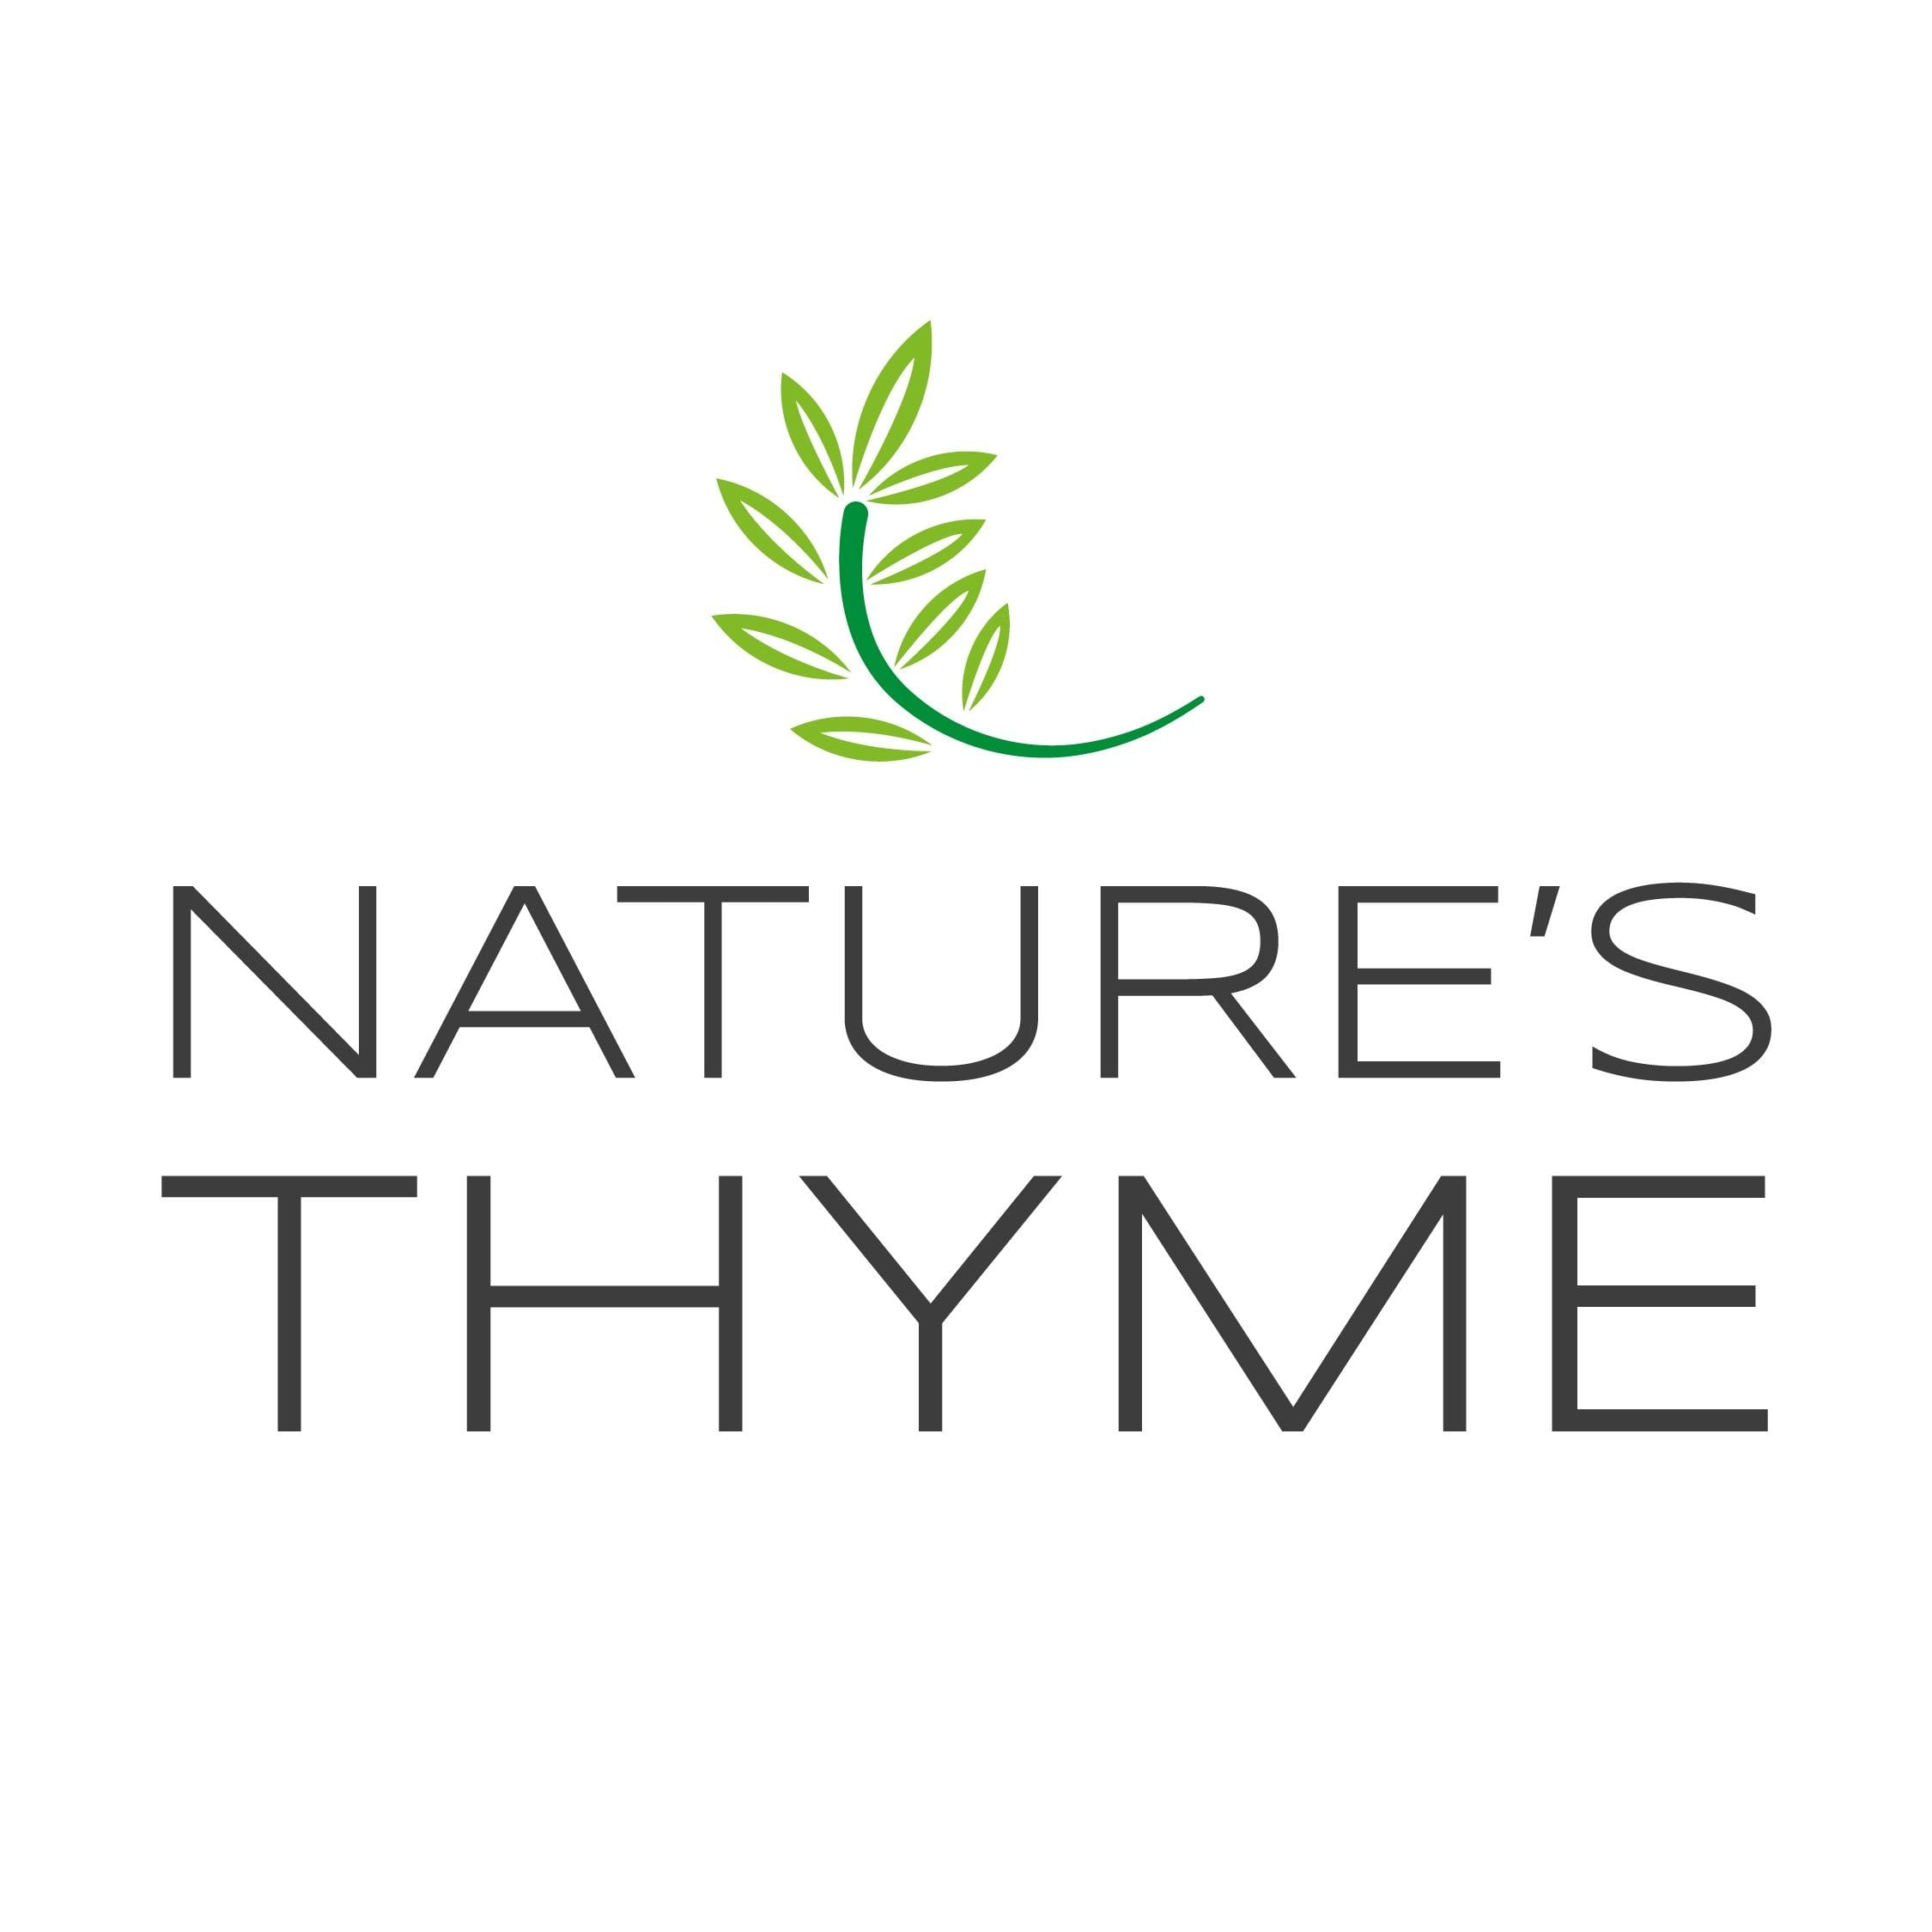 Natures Thyme